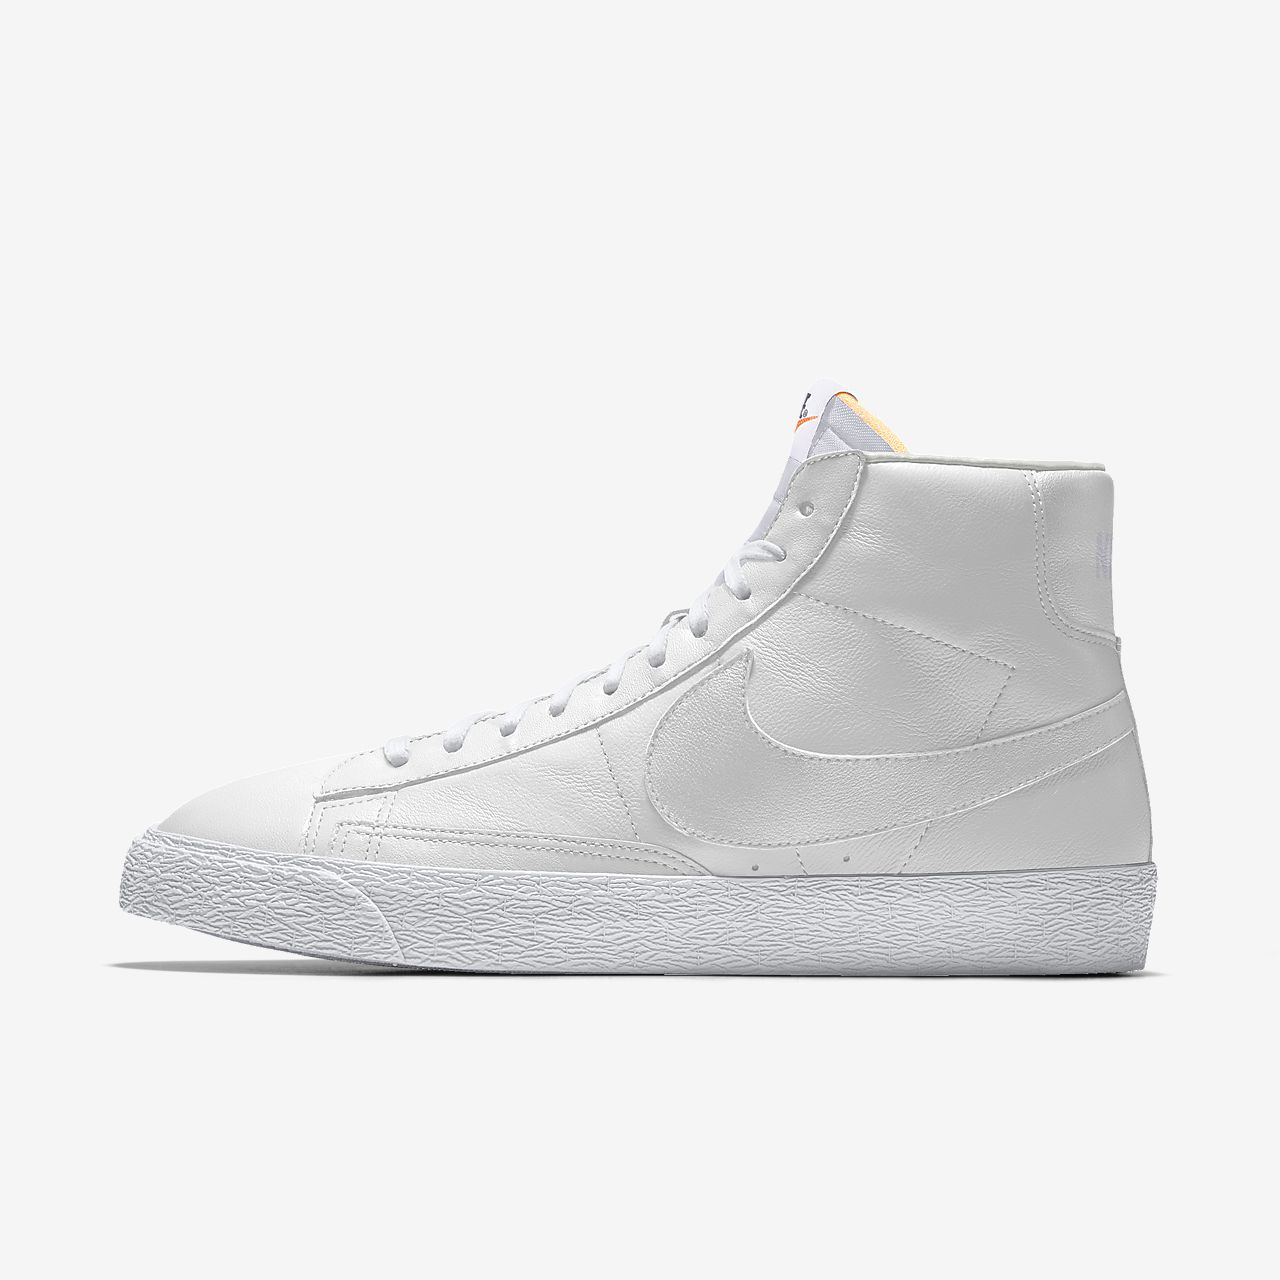 Chaussure personnalisable Nike Blazer Mid By You pour Femme